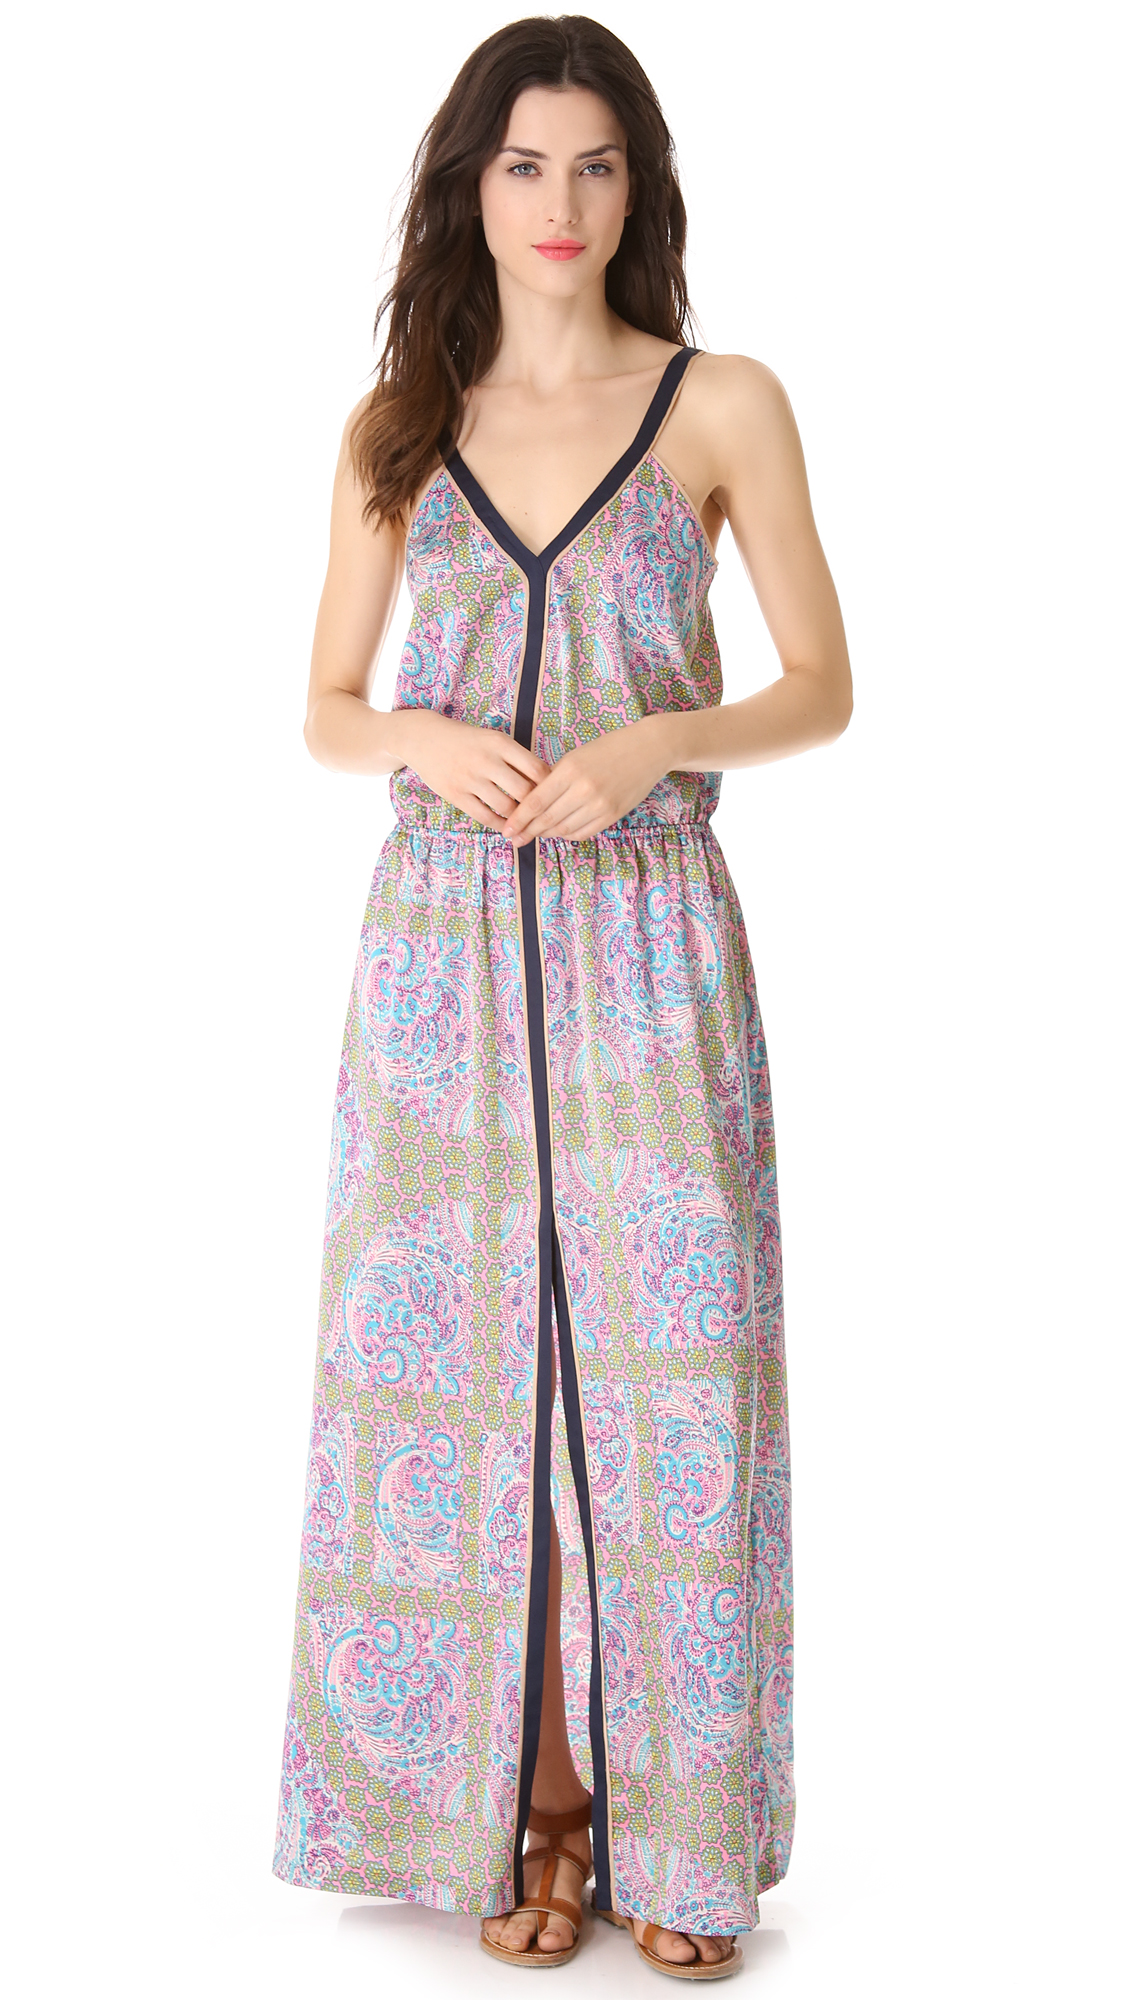 Lyst - Juicy Couture Imperial Starflower Maxi Dress